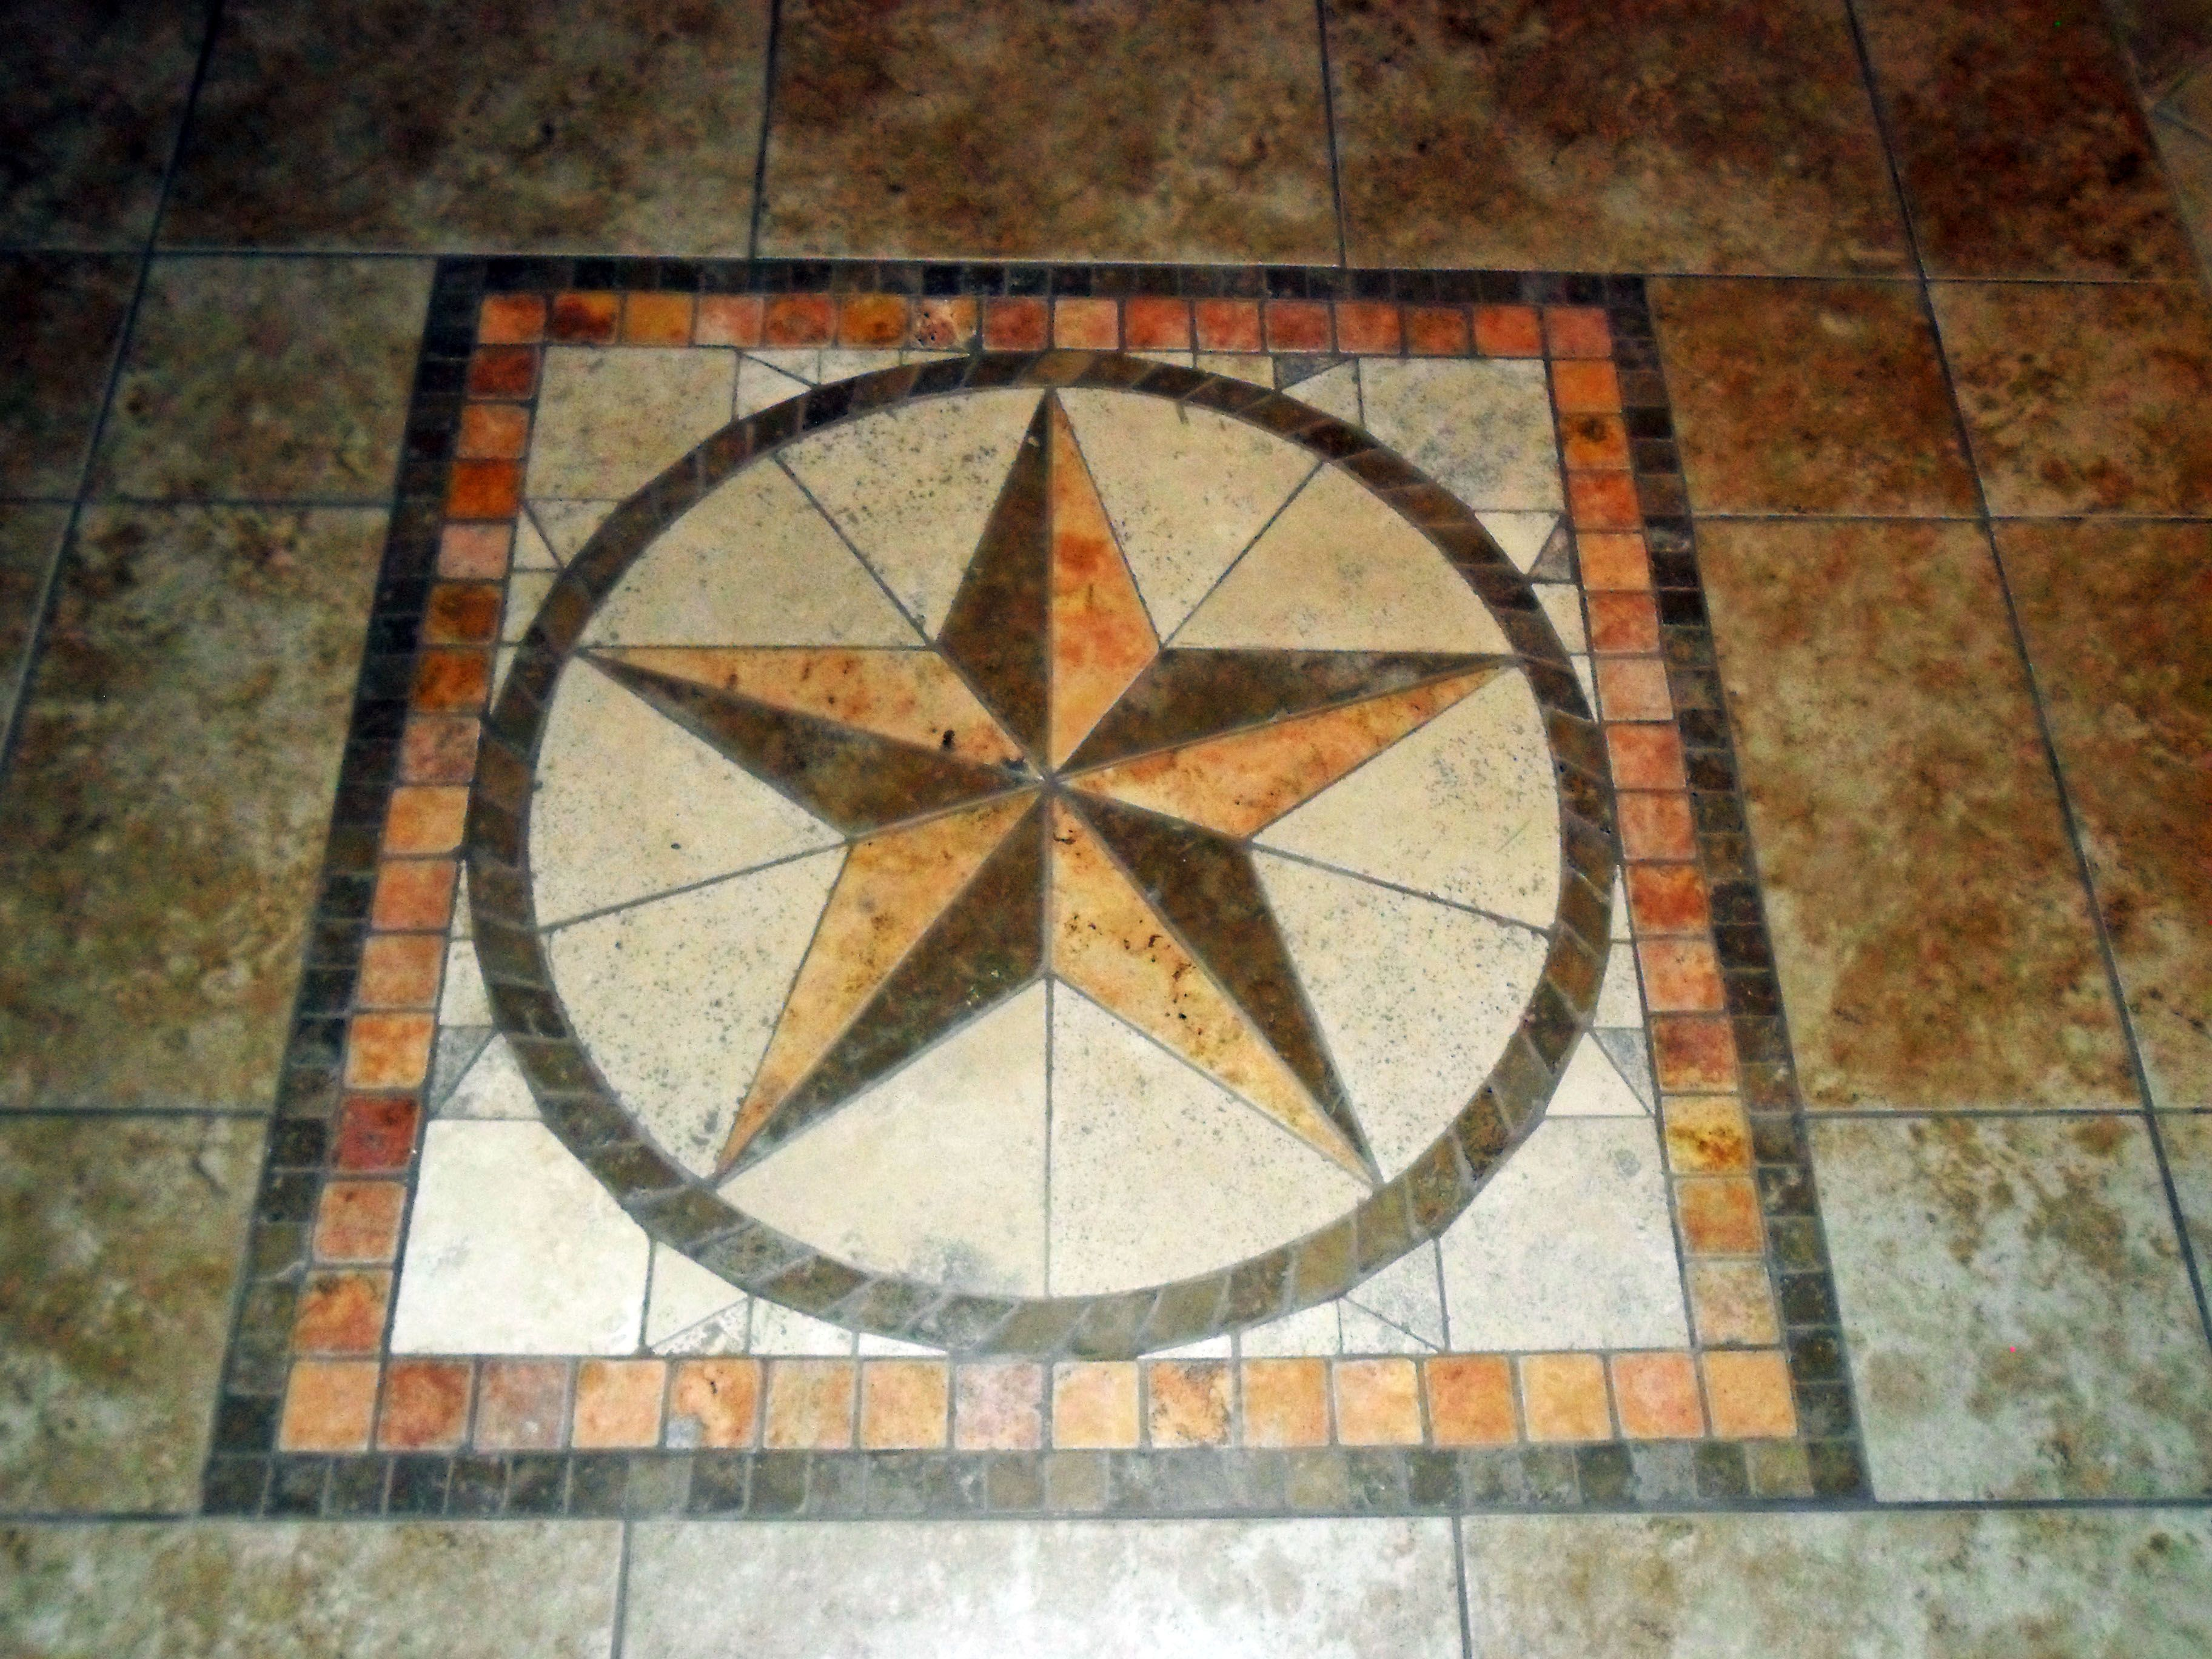 Rustic Star Tile Kit From Home Depot We Inset In The Tile In